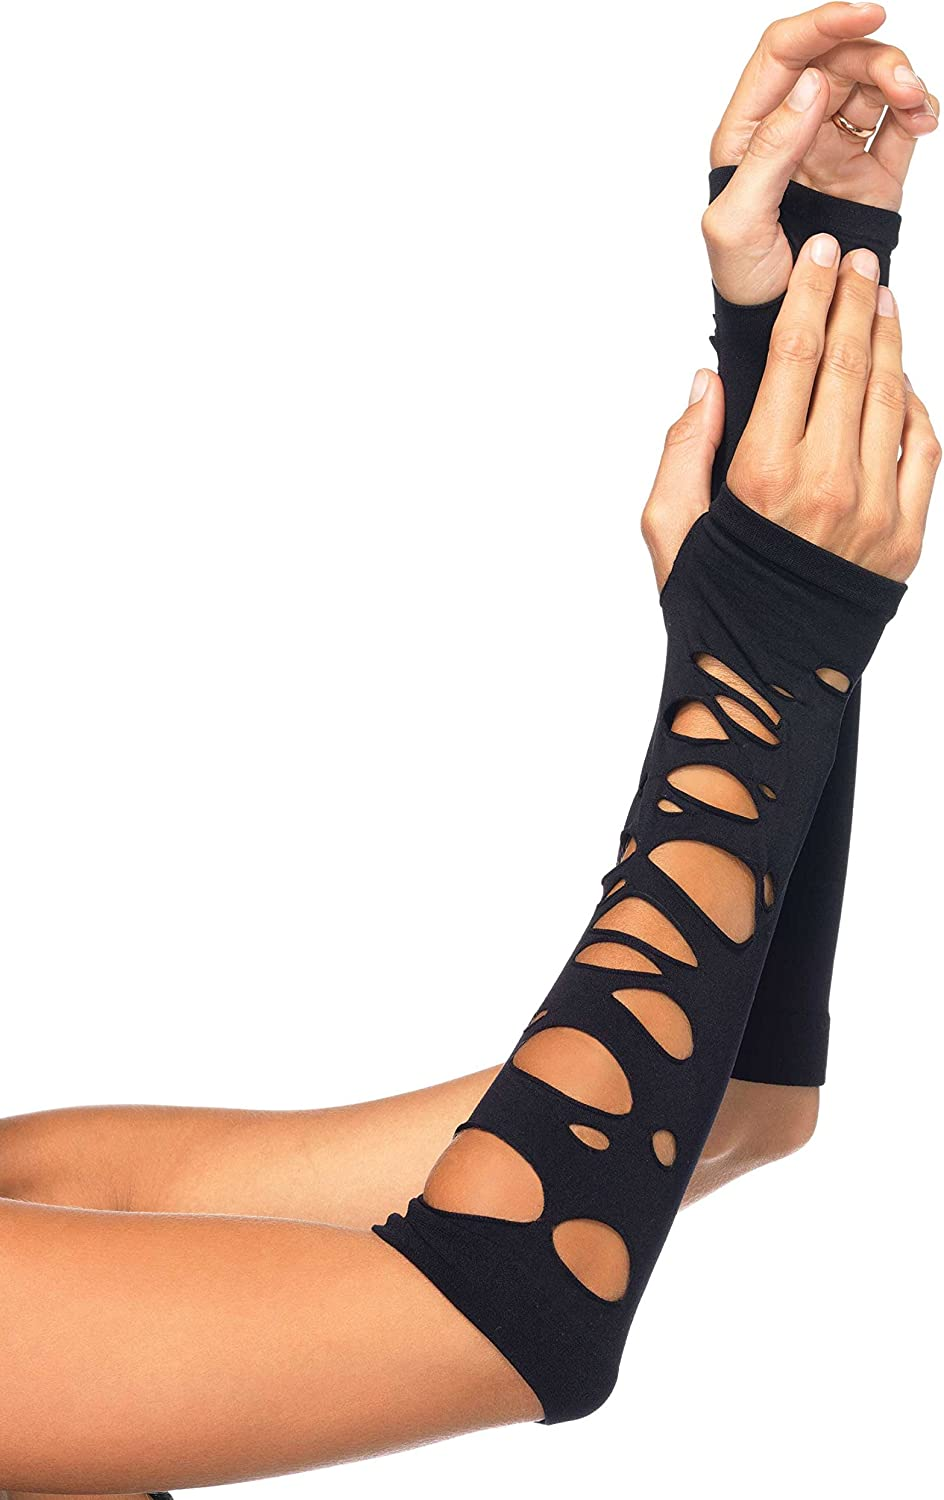 Leg Avenue Women's Distressed Glove Arm Warmers, Black, One Size: Childrens Party Supplies: Clothing